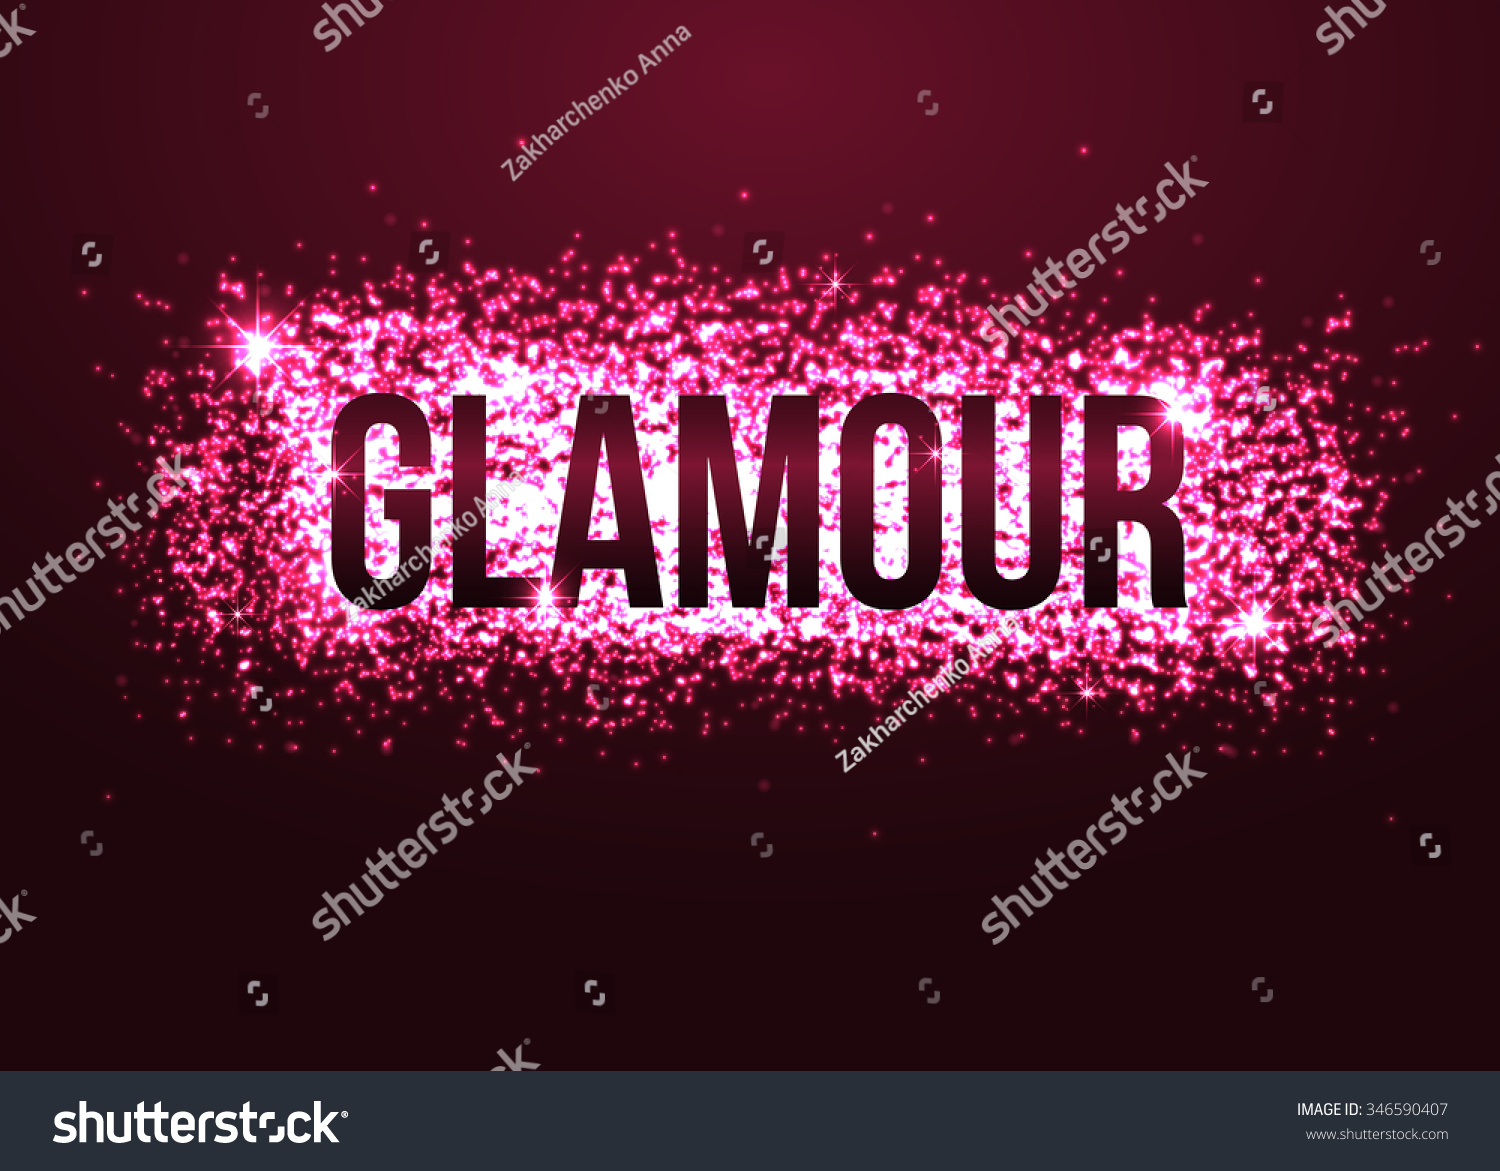 Glamour Pink Background Glitters Glamorous Background Stock Vector ...